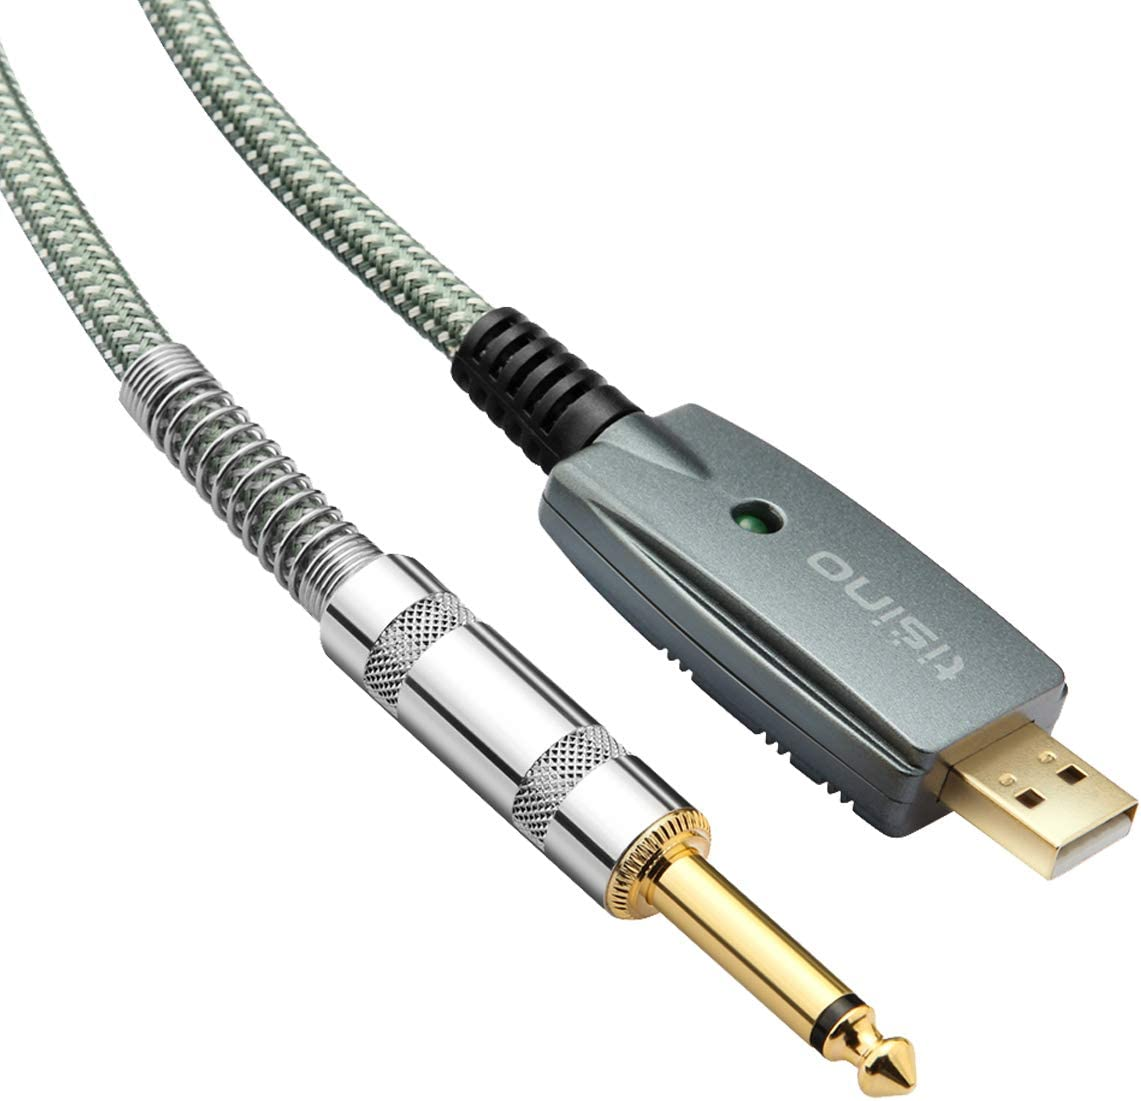 TISINO USB Guitar Cable, 10 ft USB to 1/4 inch TS Mono Jack Instruments Cord